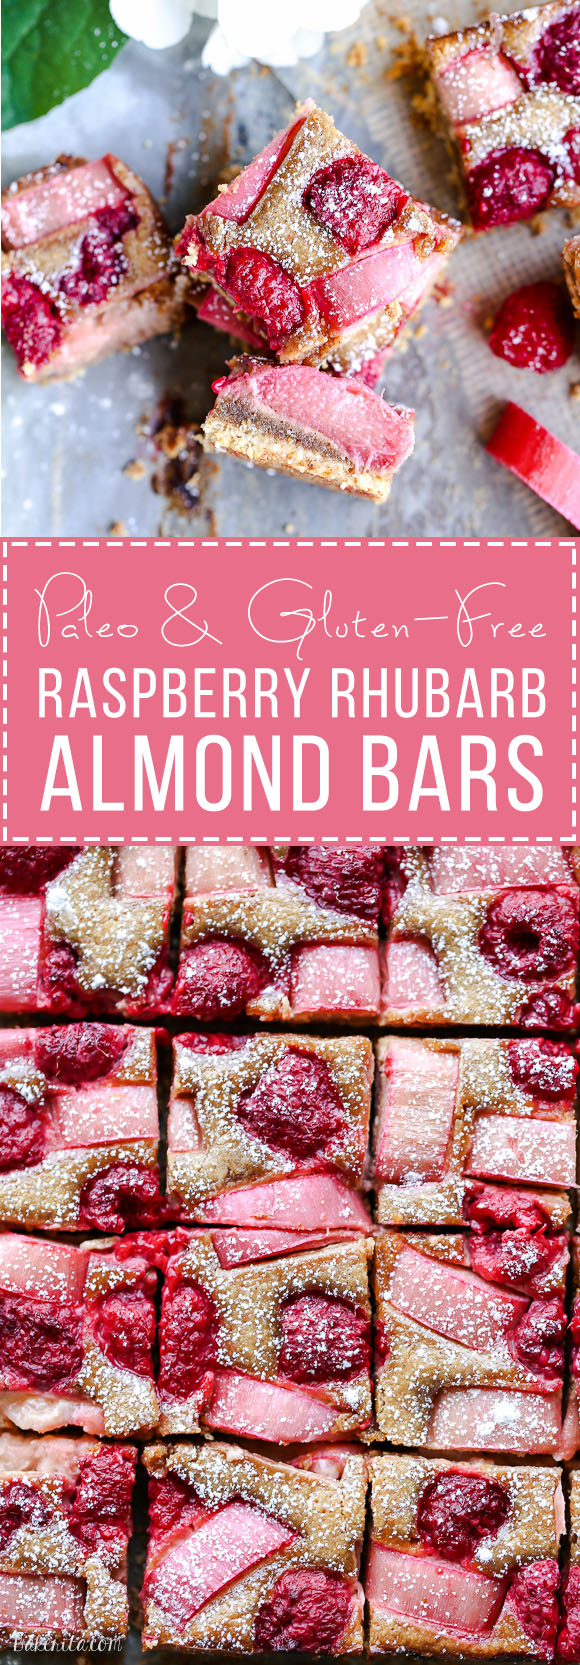 These Raspberry Rhubarb Almond Bars have an crisp almond-flour crust topped with soft almond frangipane, fresh raspberries, and tart rhubarb. This recipe is Paleo, gluten free + refined sugar free.